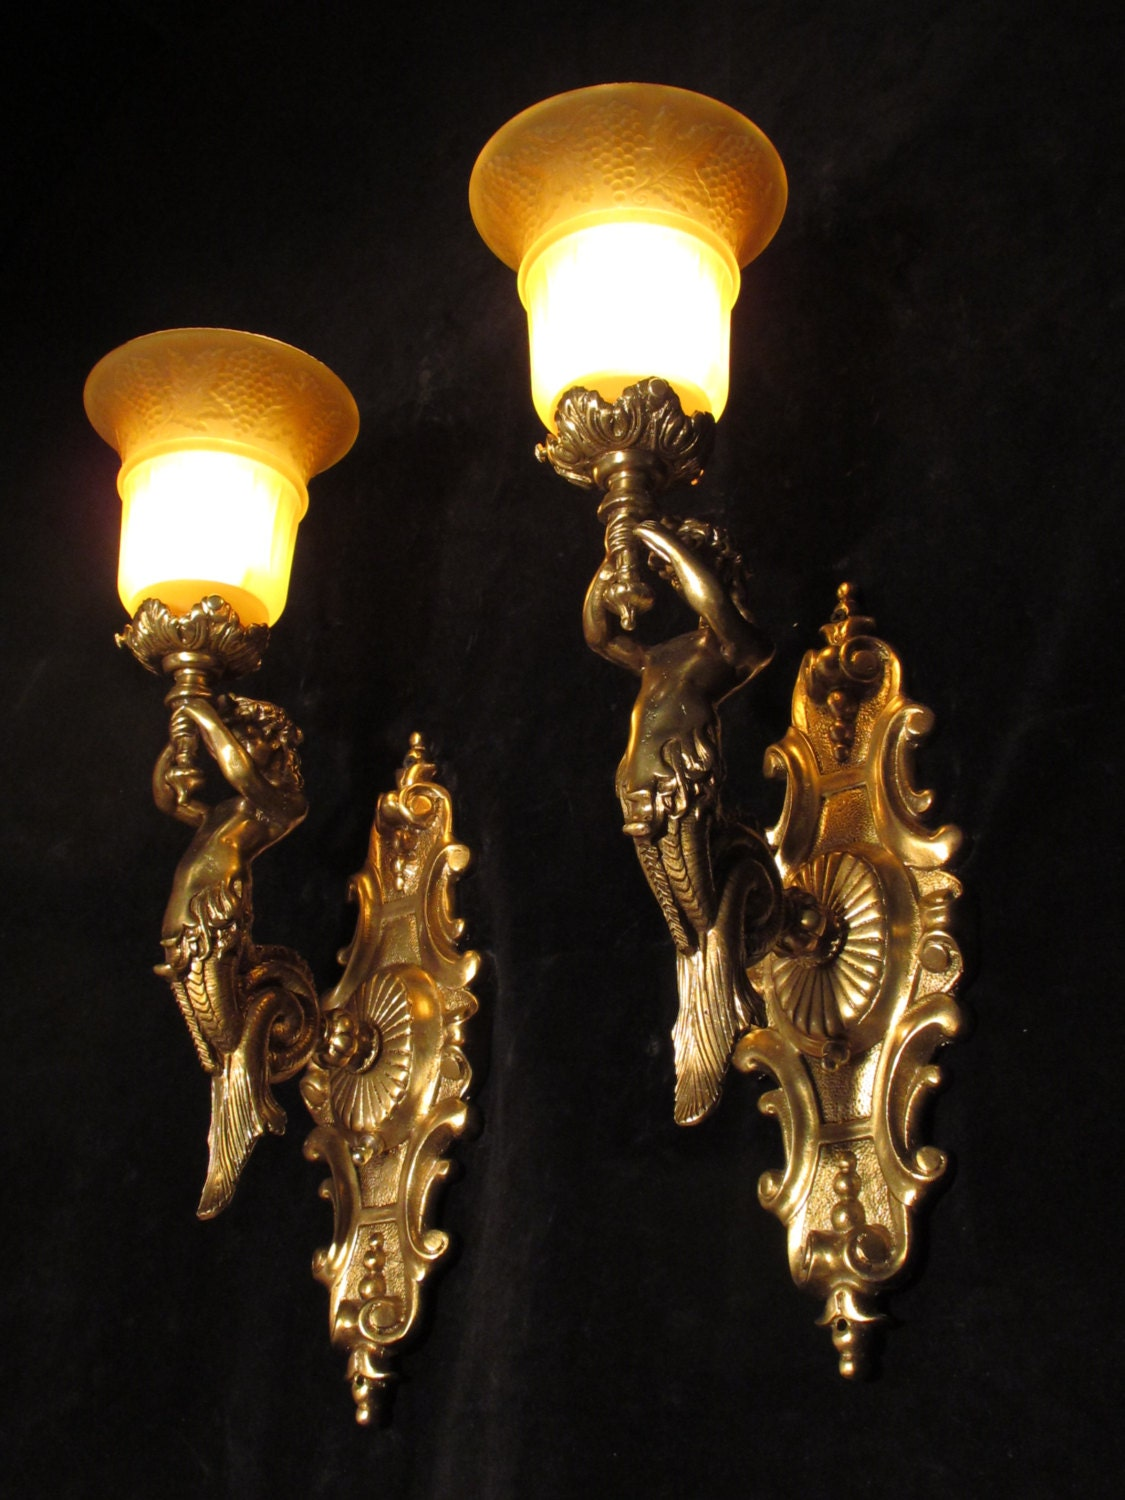 Pair of wall light sconces french style with mermaid sculptures pair of wall light sconces french style with mermaid sculptures solid bronze by sergio merlin aloadofball Choice Image